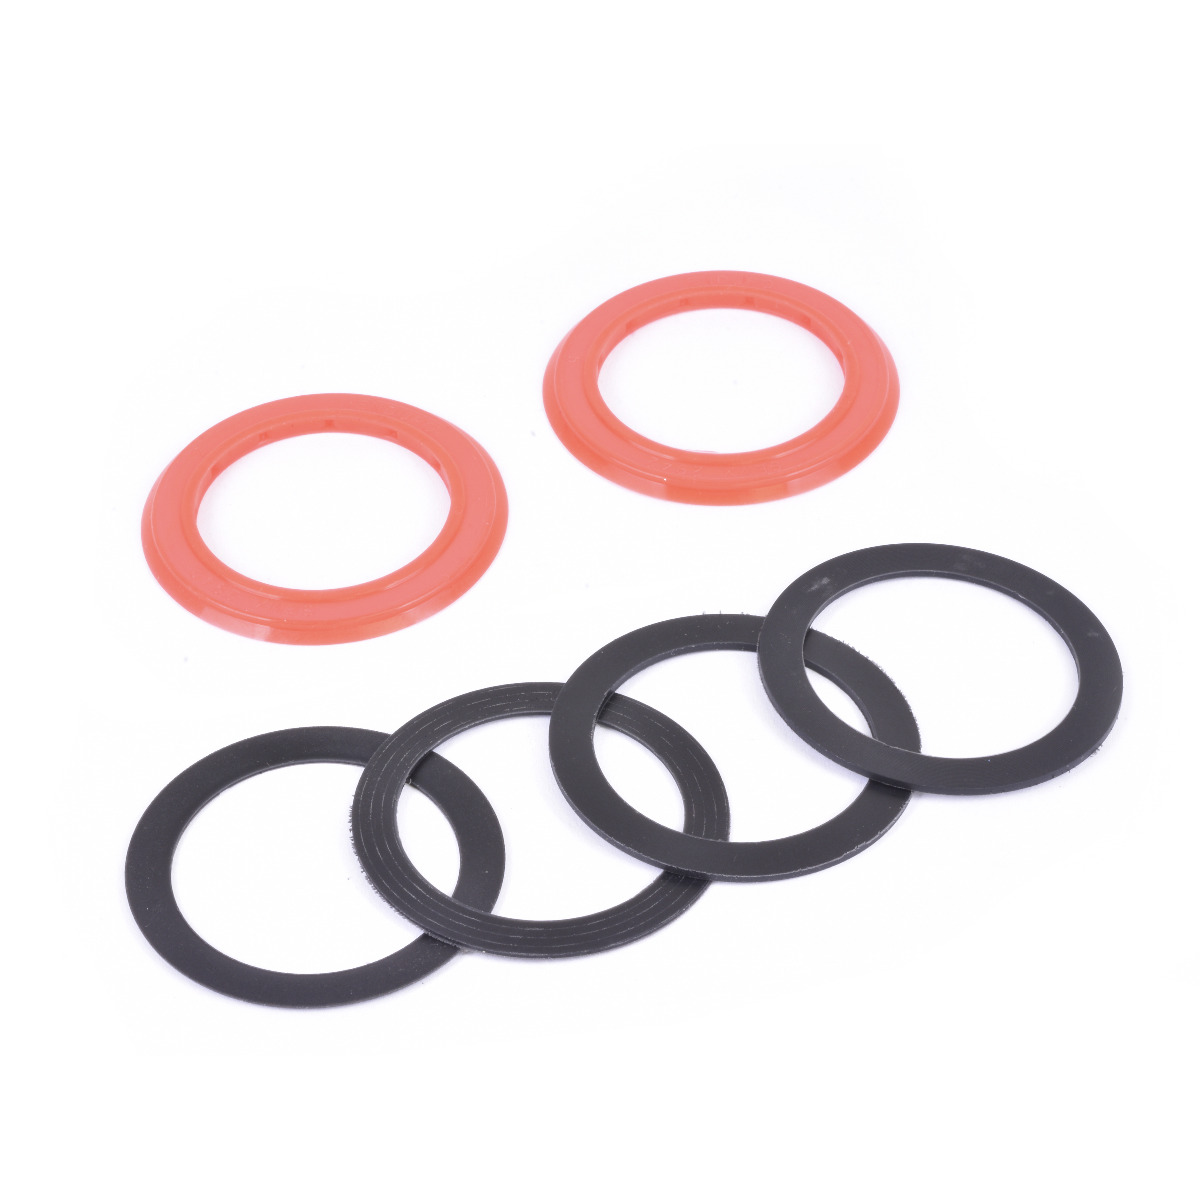 Wheels Manufacturing Inc. Repair Pack for 29mm Spindle Bottom Brackets